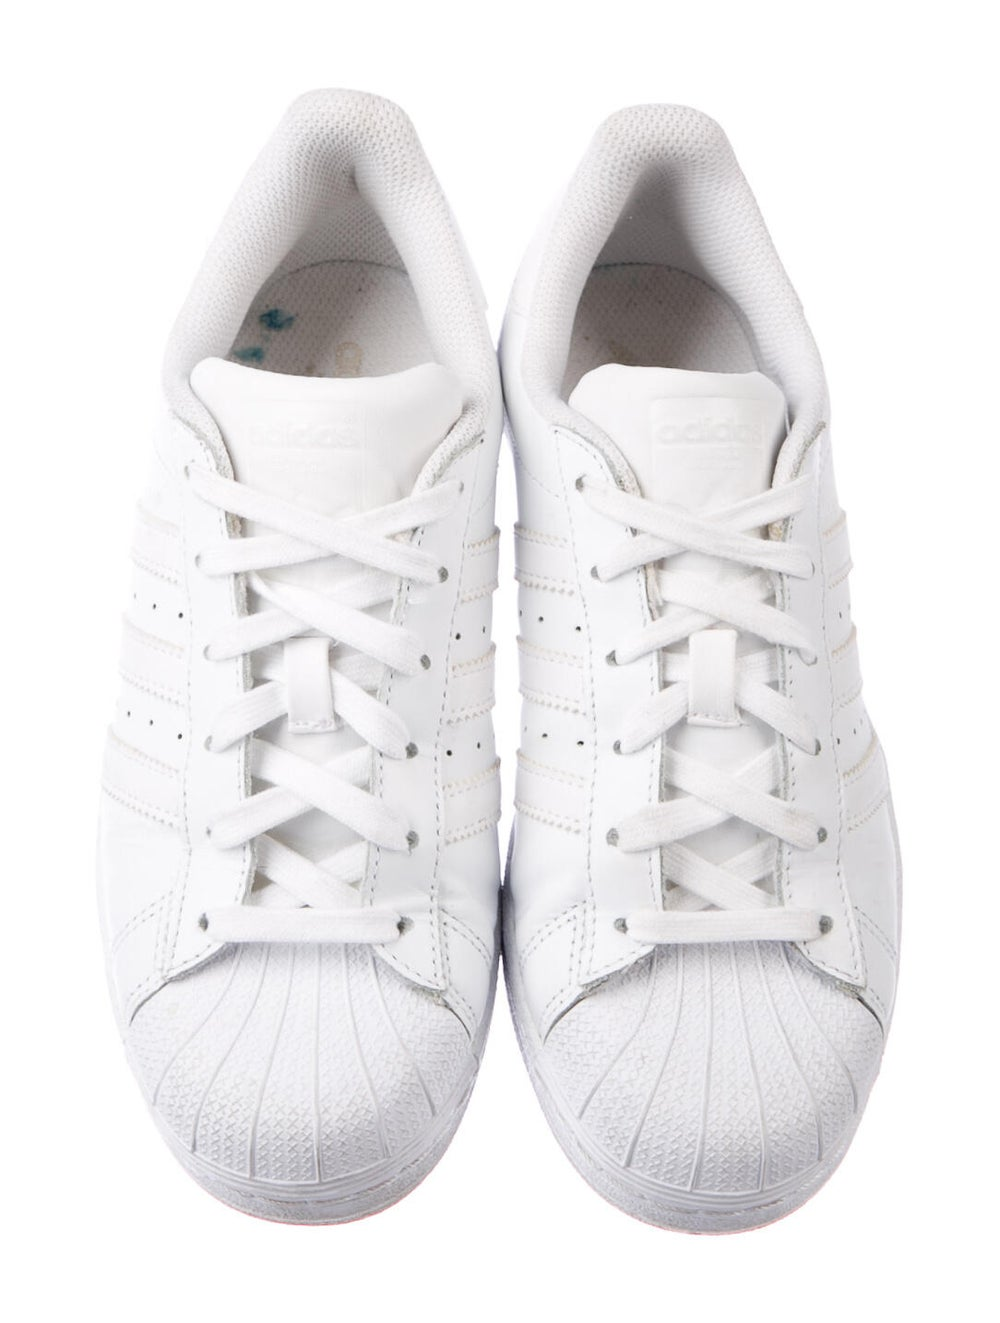 Adidas Superstar Sneakers White - image 3